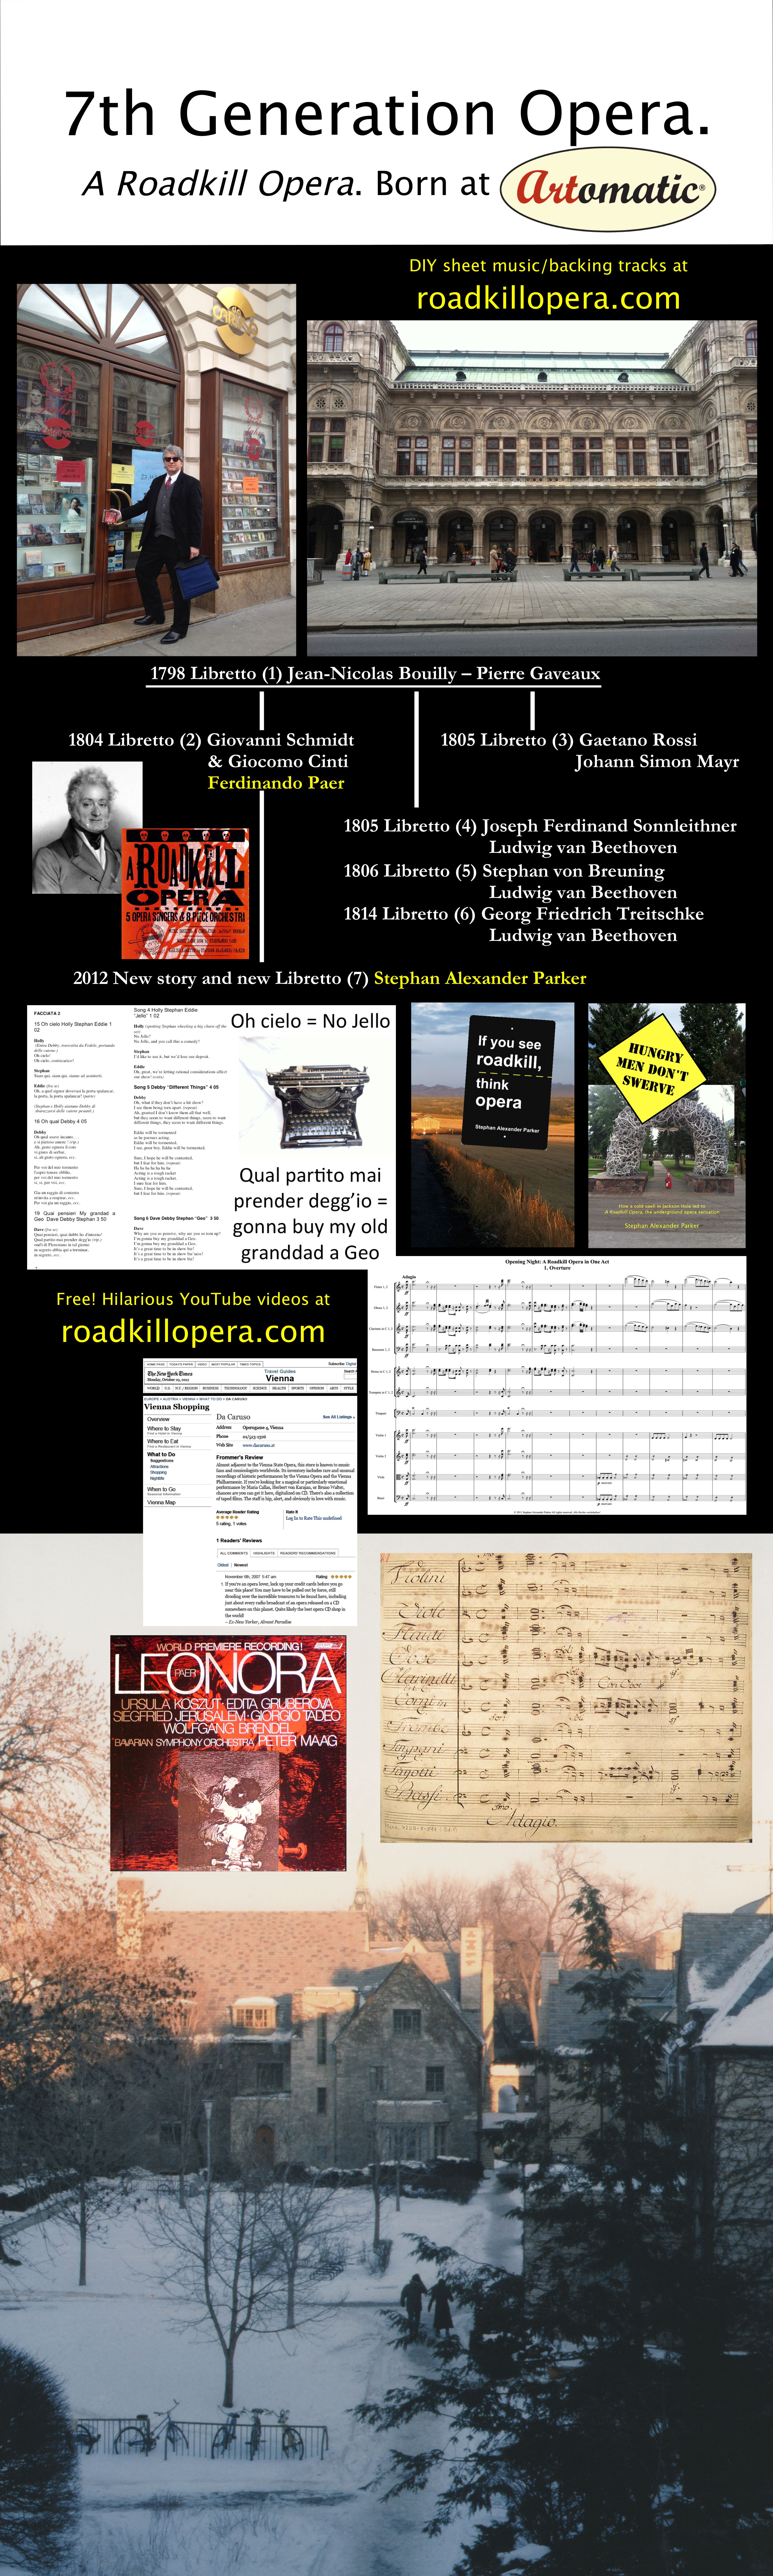 Poster with photos of Da Caruso, a New York Times / Framers review of Da Caruso, photos of the score in 1804 manuscript and 2011 print, covers of the 1978 Leonora album and the 2013 A Roadkill Opera CD, and the view from Parker's dorm in 1979.